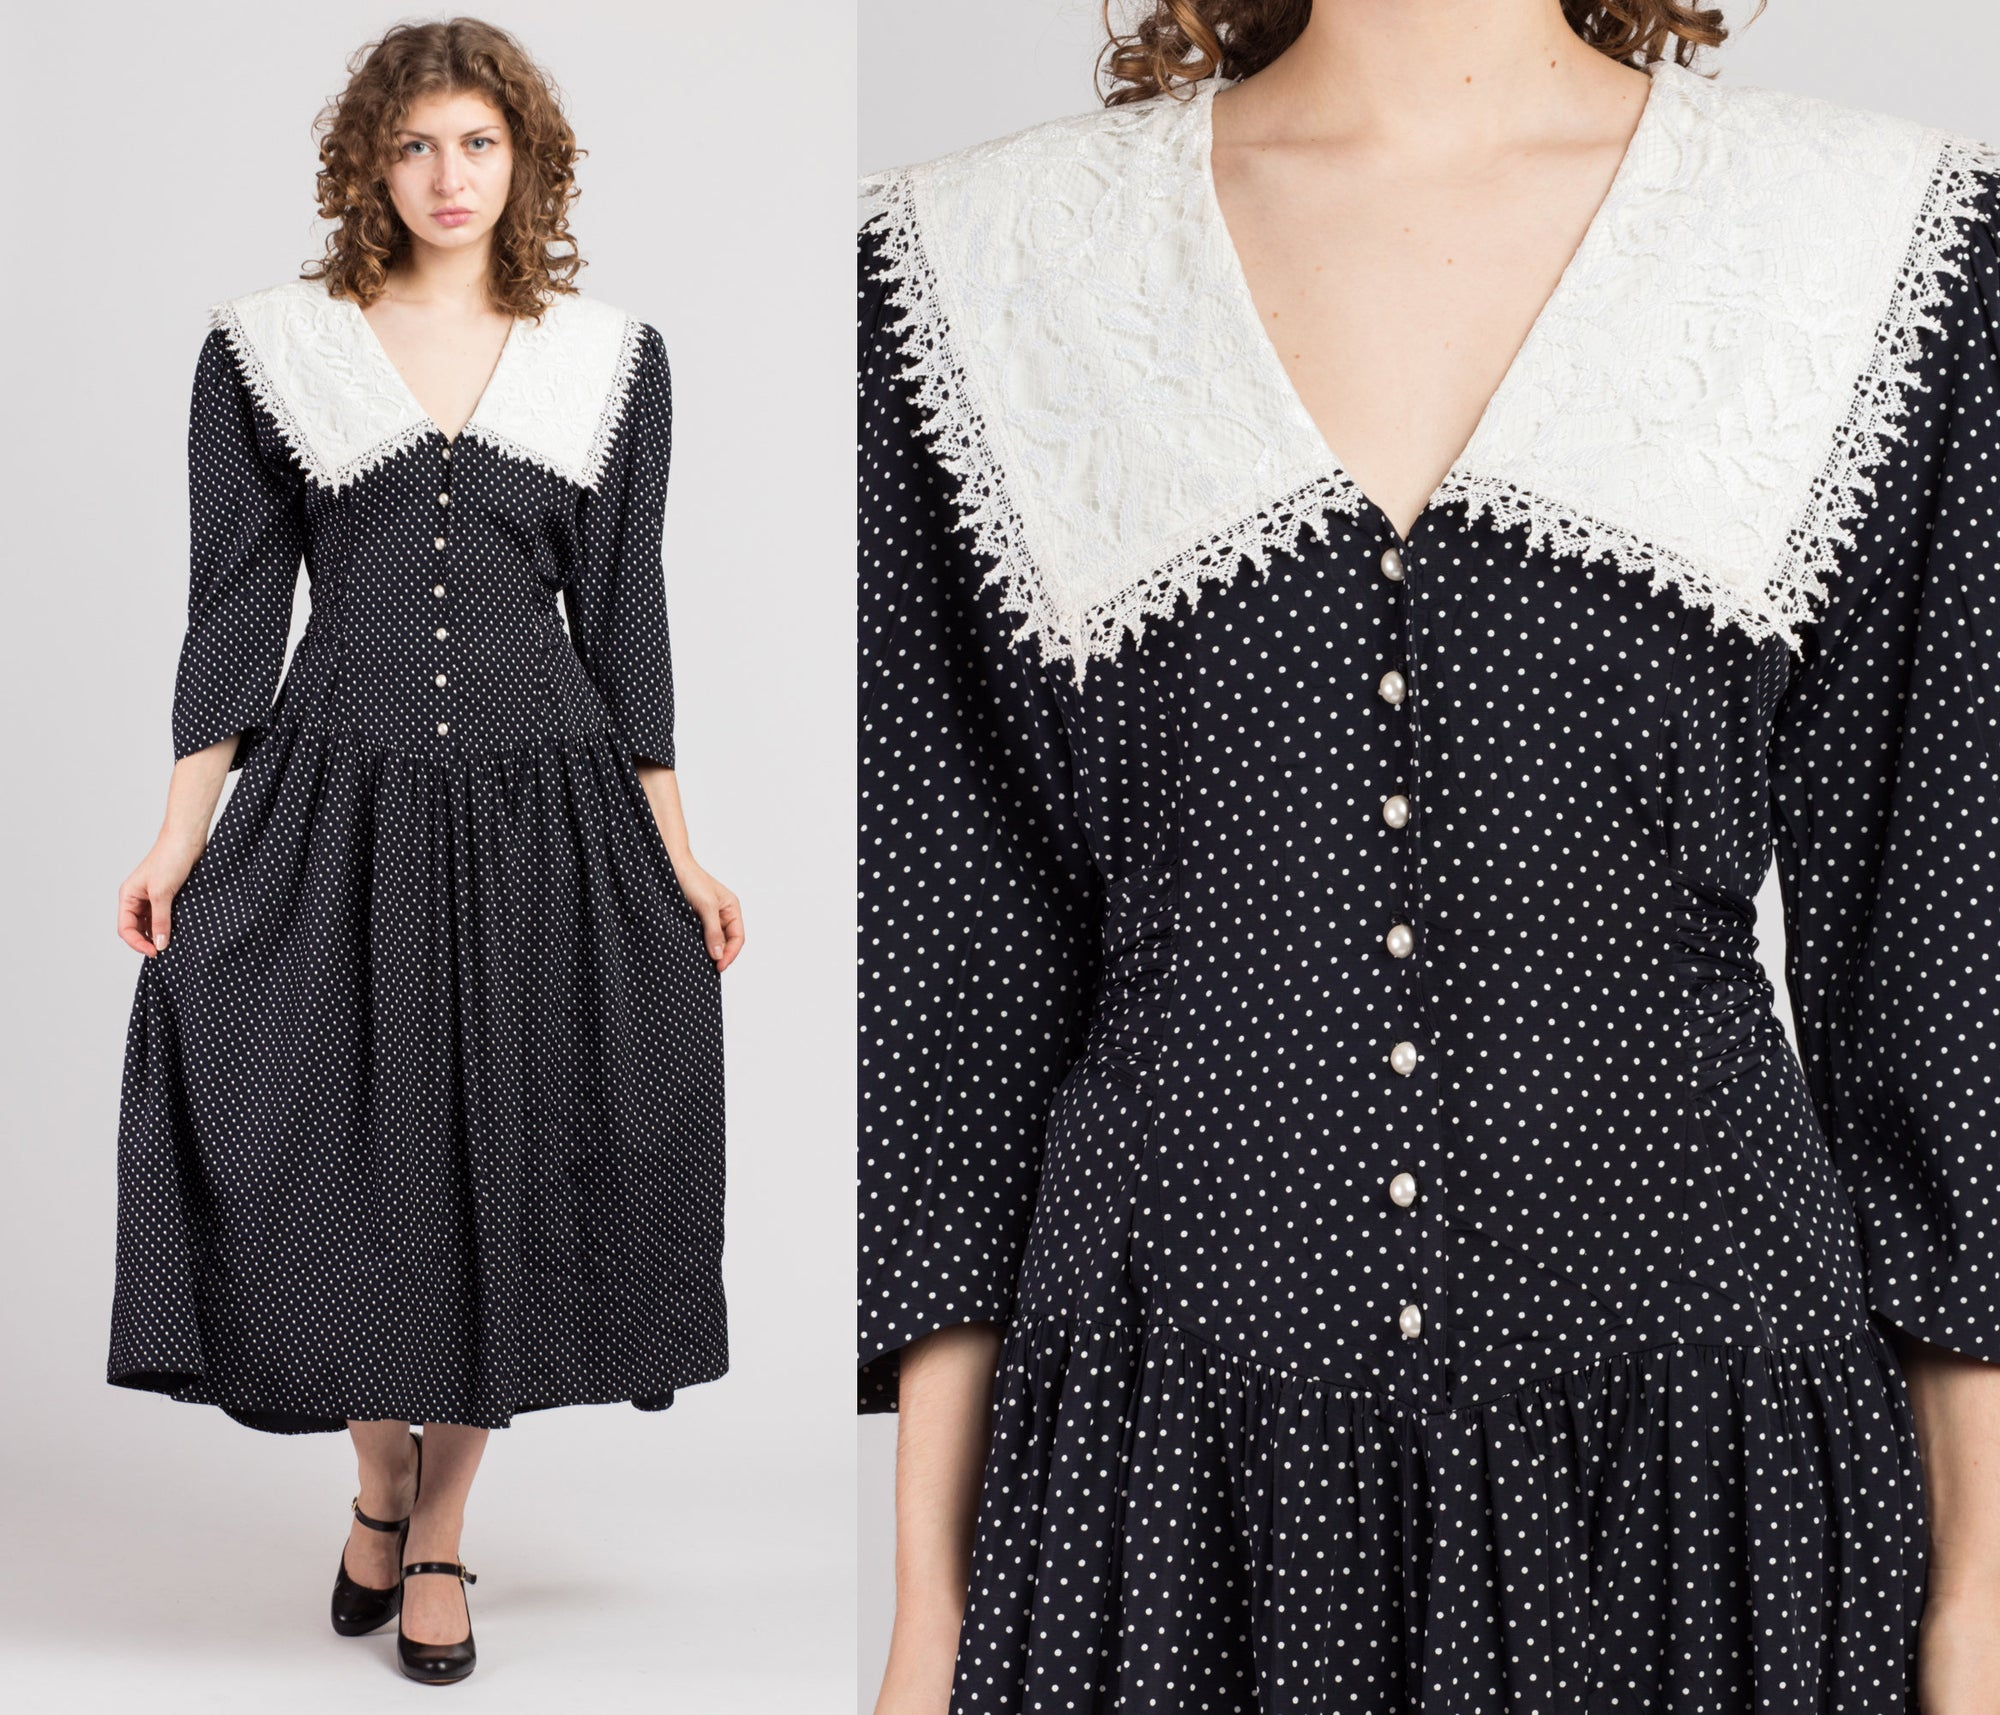 80s Black & White Polka Dot Lace Collar Dress - Large